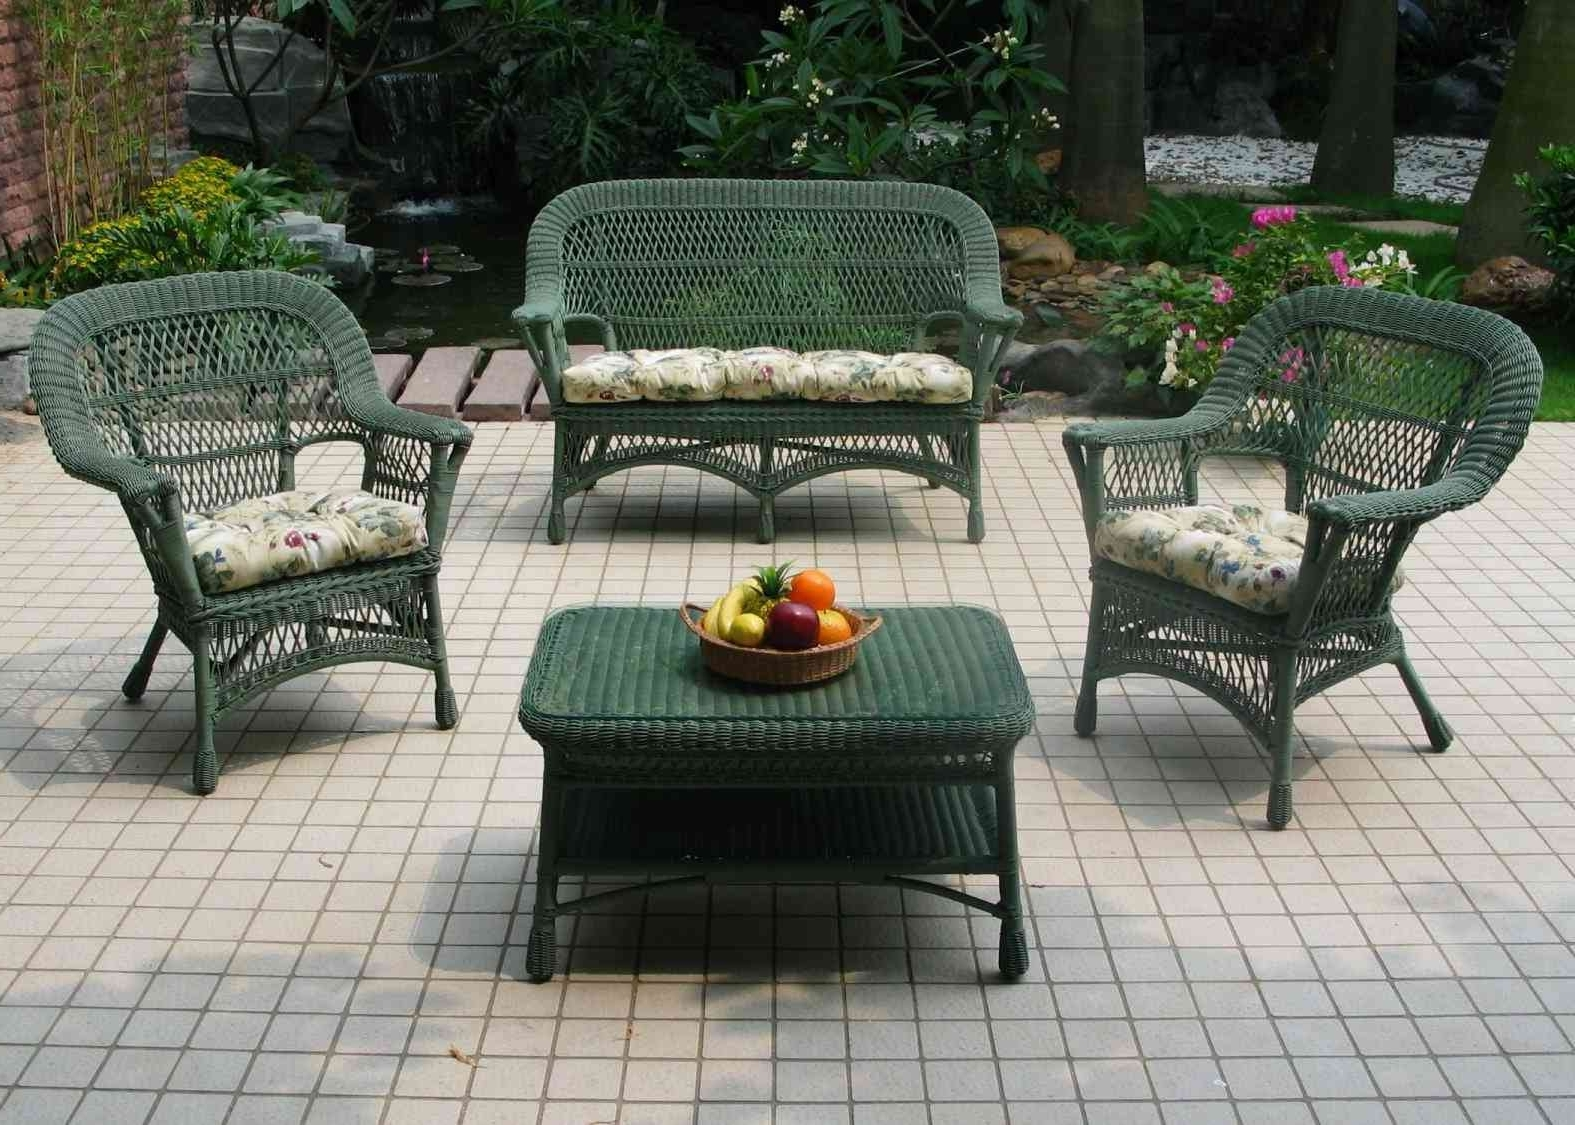 Nfm Patio Conversation Sets With Regard To Best And Newest Small Outdoor Wicker Patio Furniture Ideas : Sathoud Decors – Repair (View 13 of 15)